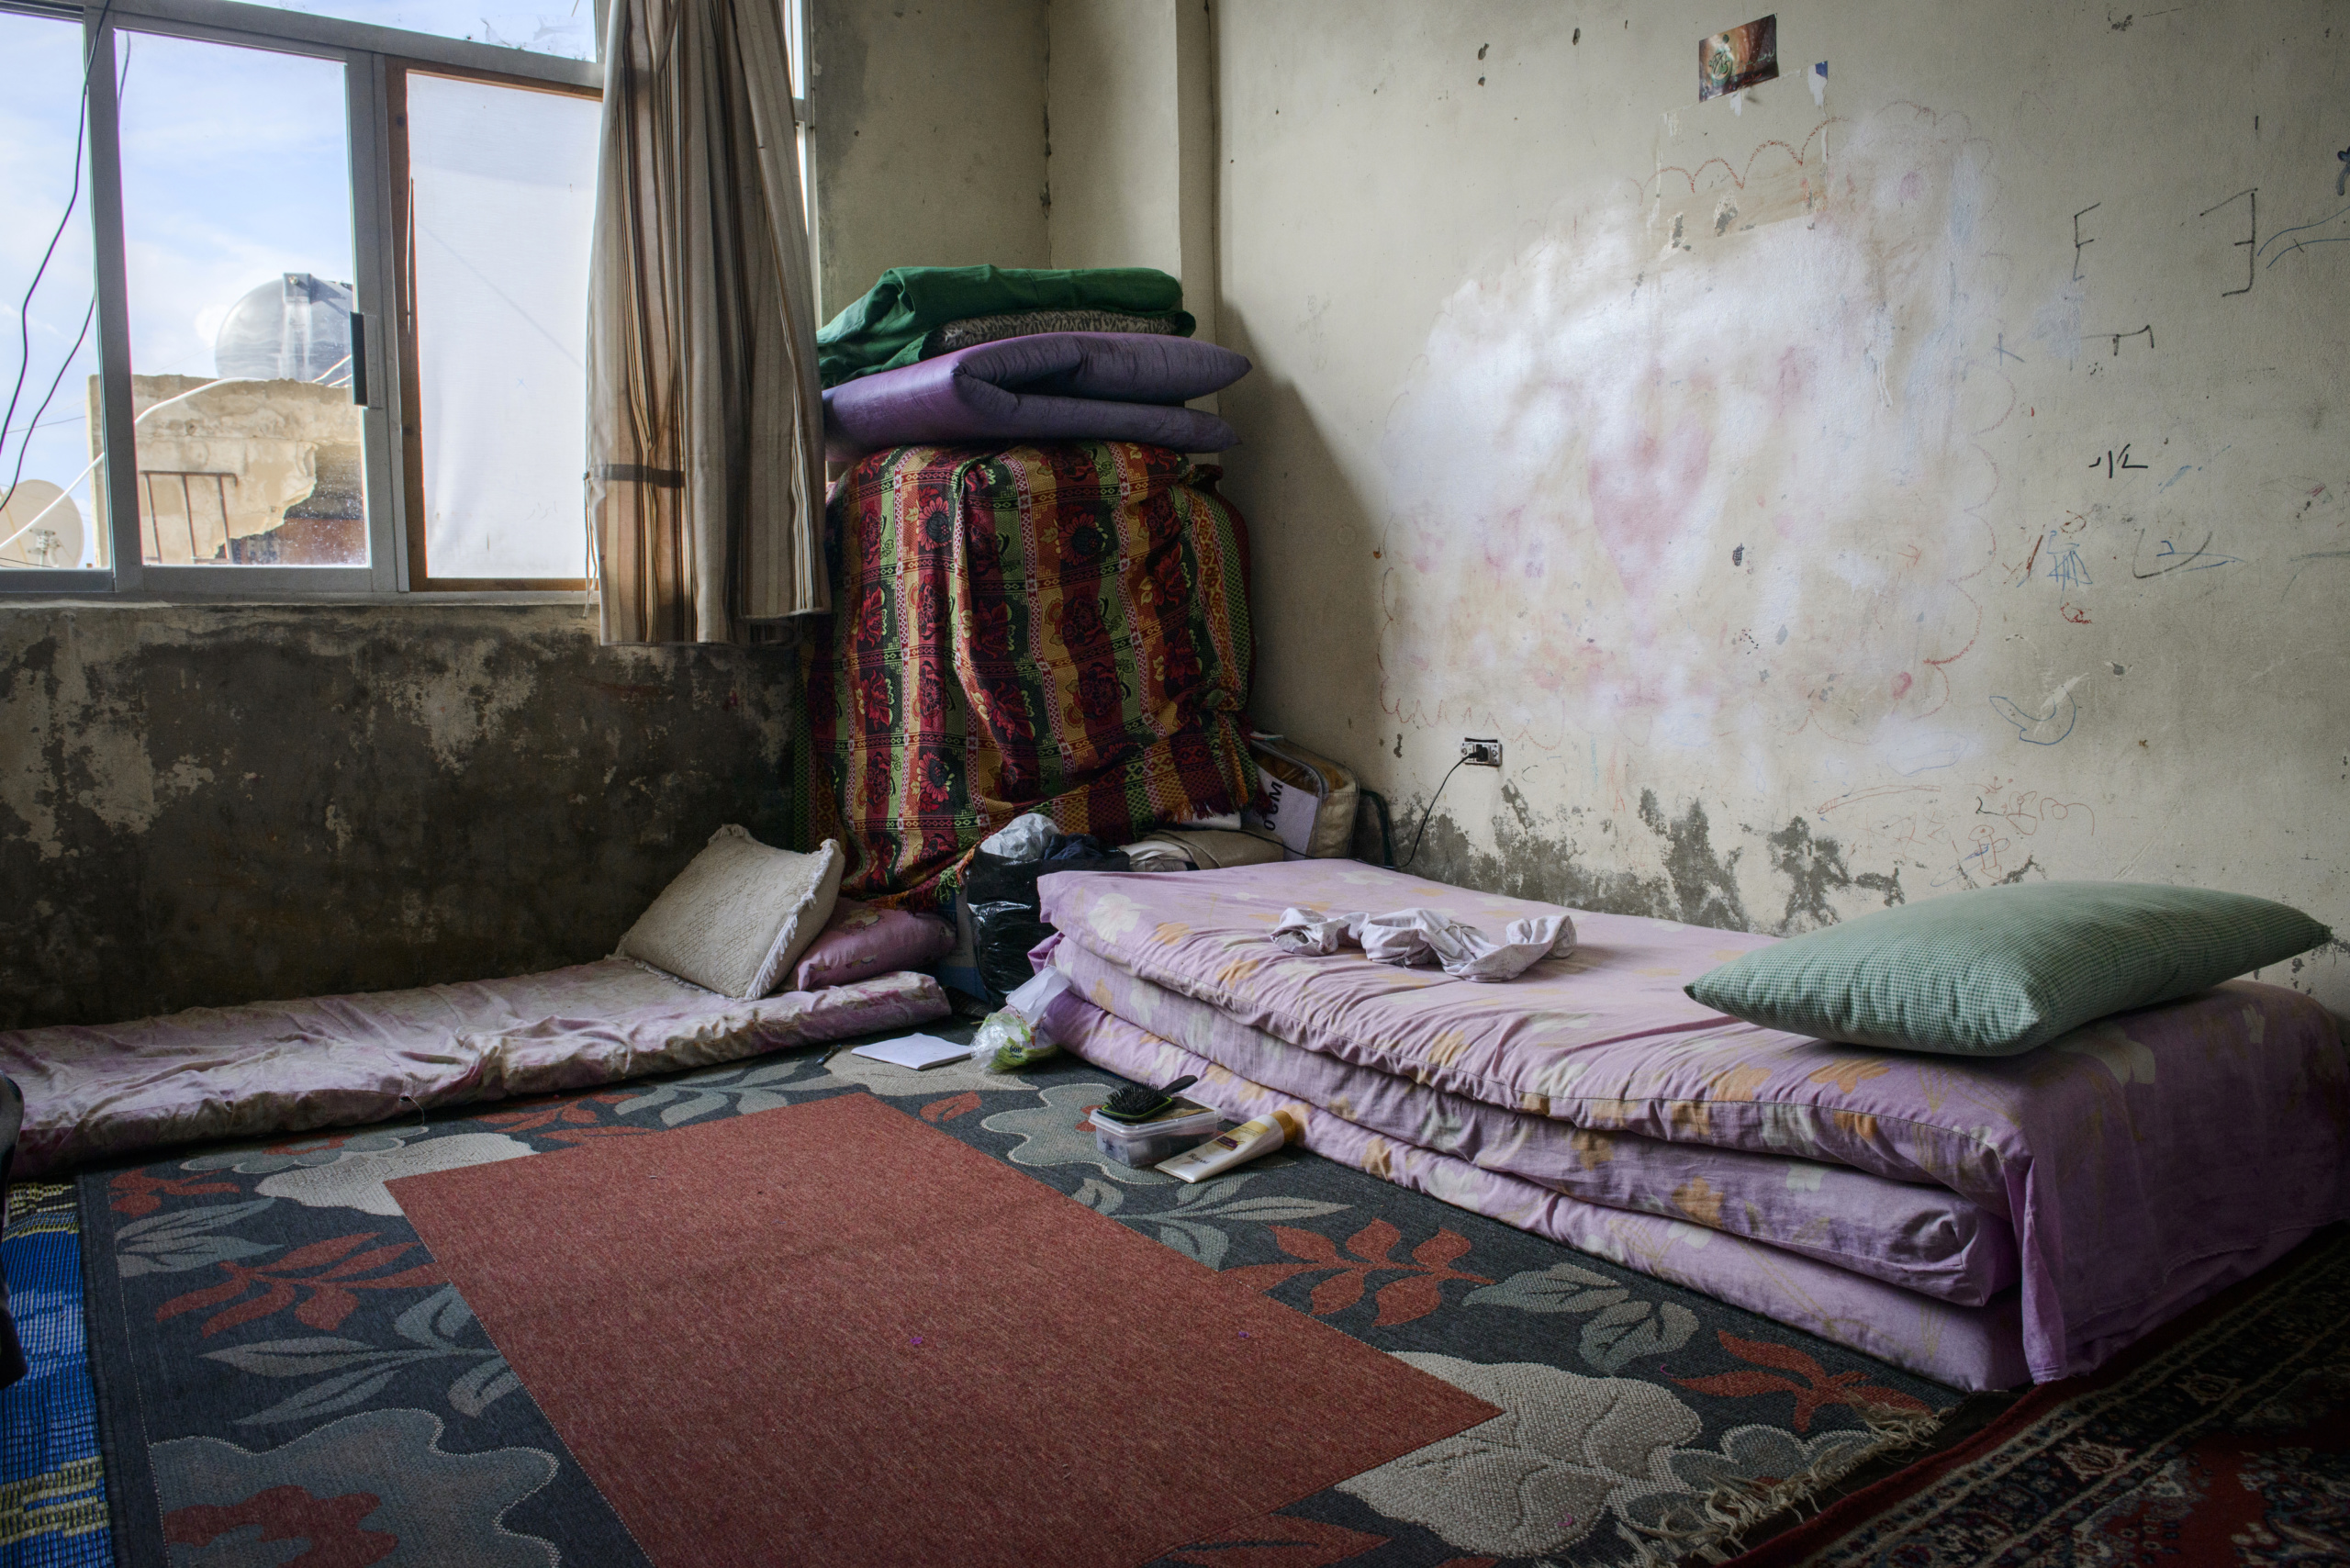 Saida-Lebanon. A room inside an  abandoned construction site occupied by Syrian refugees.This building is located in the center of Saida . The owner gave access electricity and water free of charge to refugees. . The refugees  try to survive through public subsidies and underpaid labor. the Lebanese government will not allow traditional refugee camps in Lebanon, refugees are finding unusual places to live across the country, including unfinished homes, abandoned shopping malls and schools .......